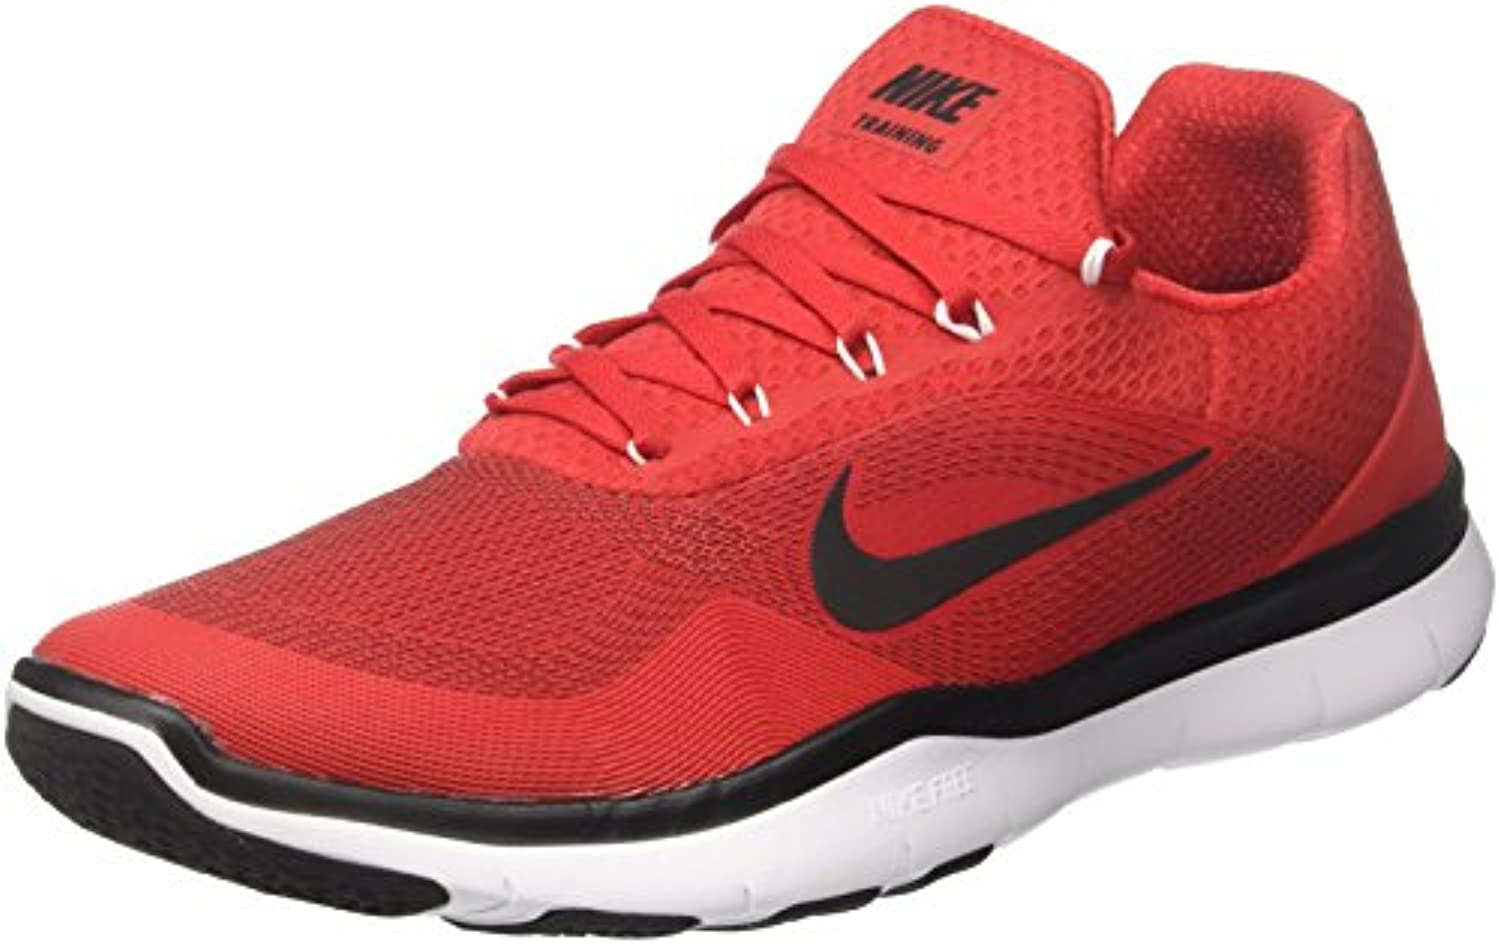 Nike Uomo Free Trainer V7 Fitness Fitness Fitness Scarpe Sportive Indoor | Qualità Stabile